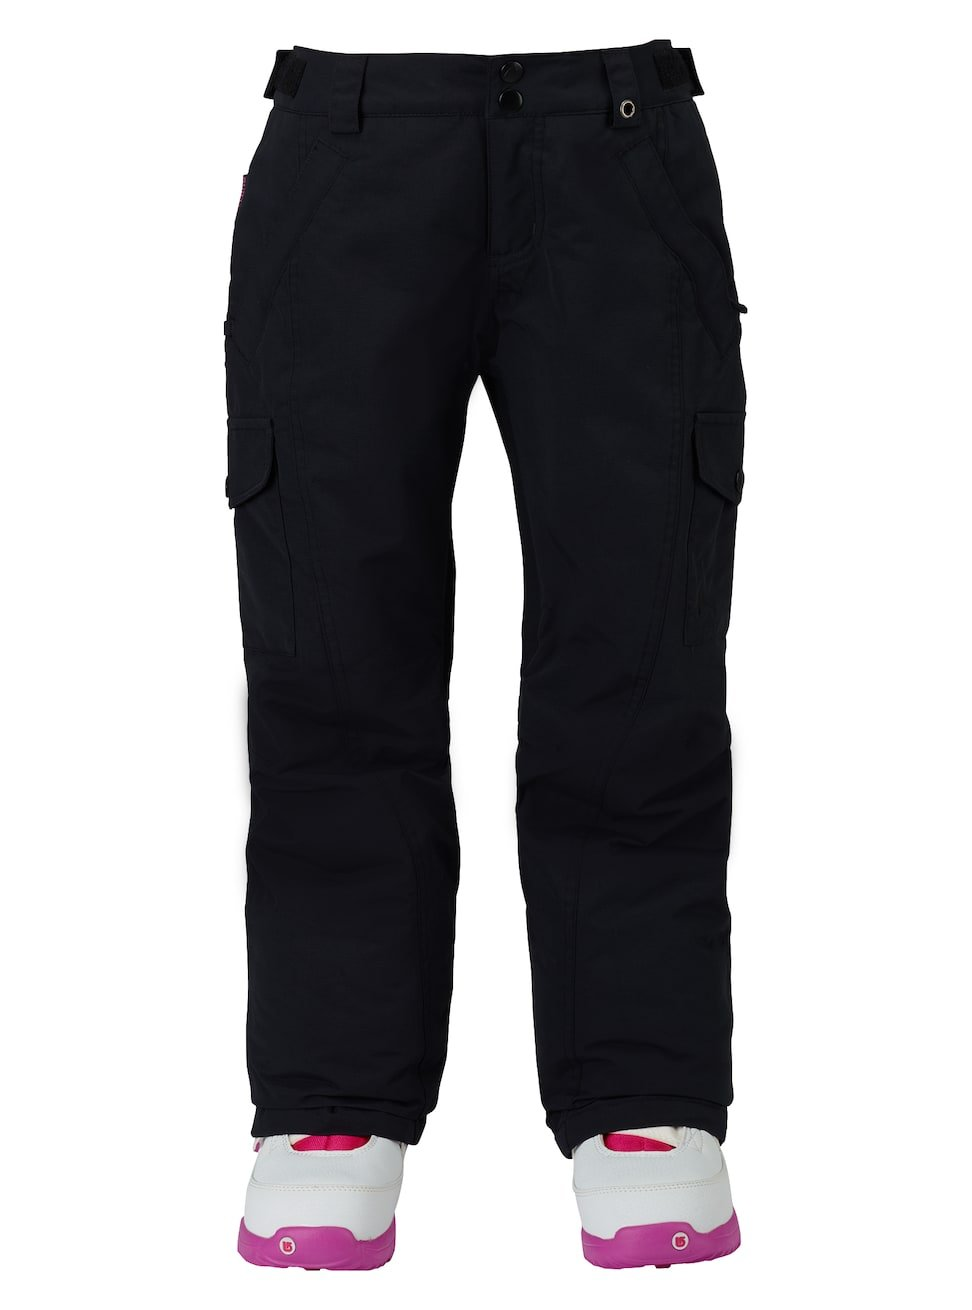 Burton Youth Girls Elite Cargo Pants, True Black, X-Small by Burton